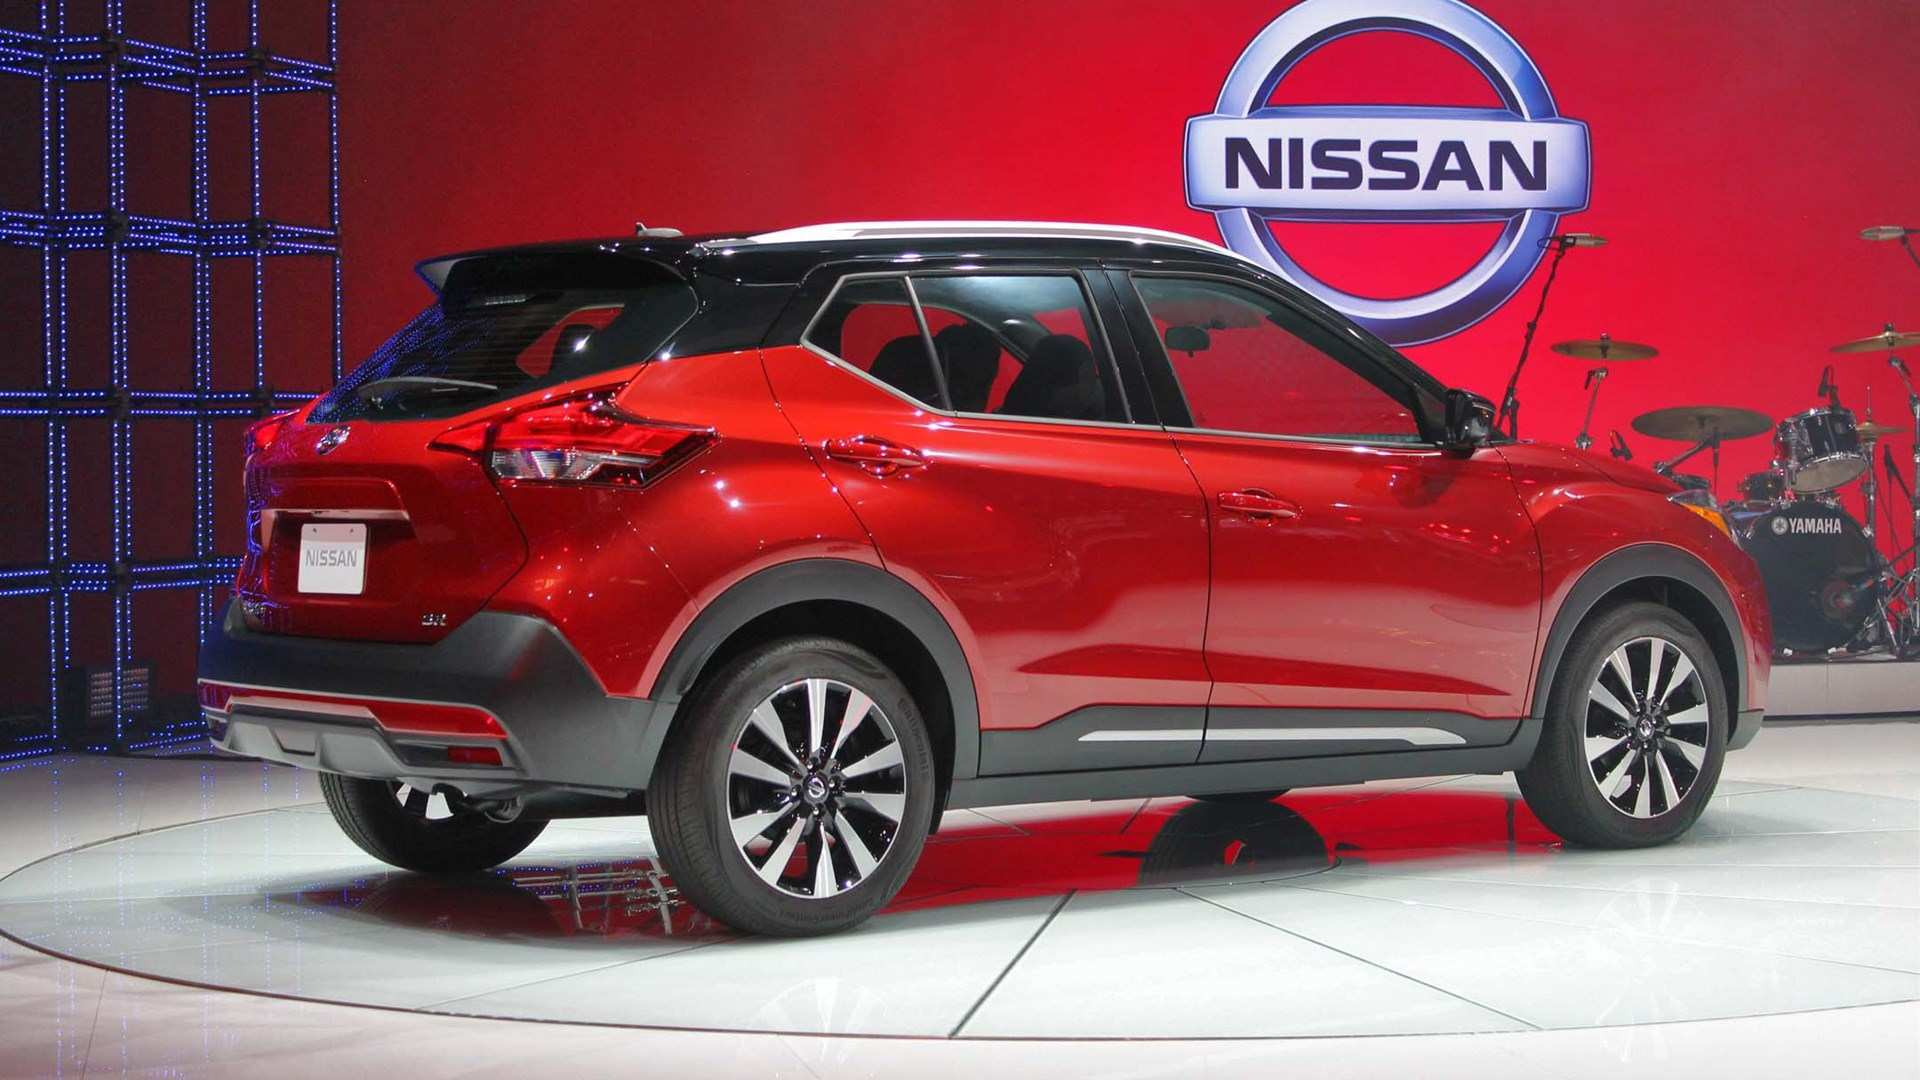 19 Concept of New Nissan 2019 Colors Overview And Price Release Date by New Nissan 2019 Colors Overview And Price